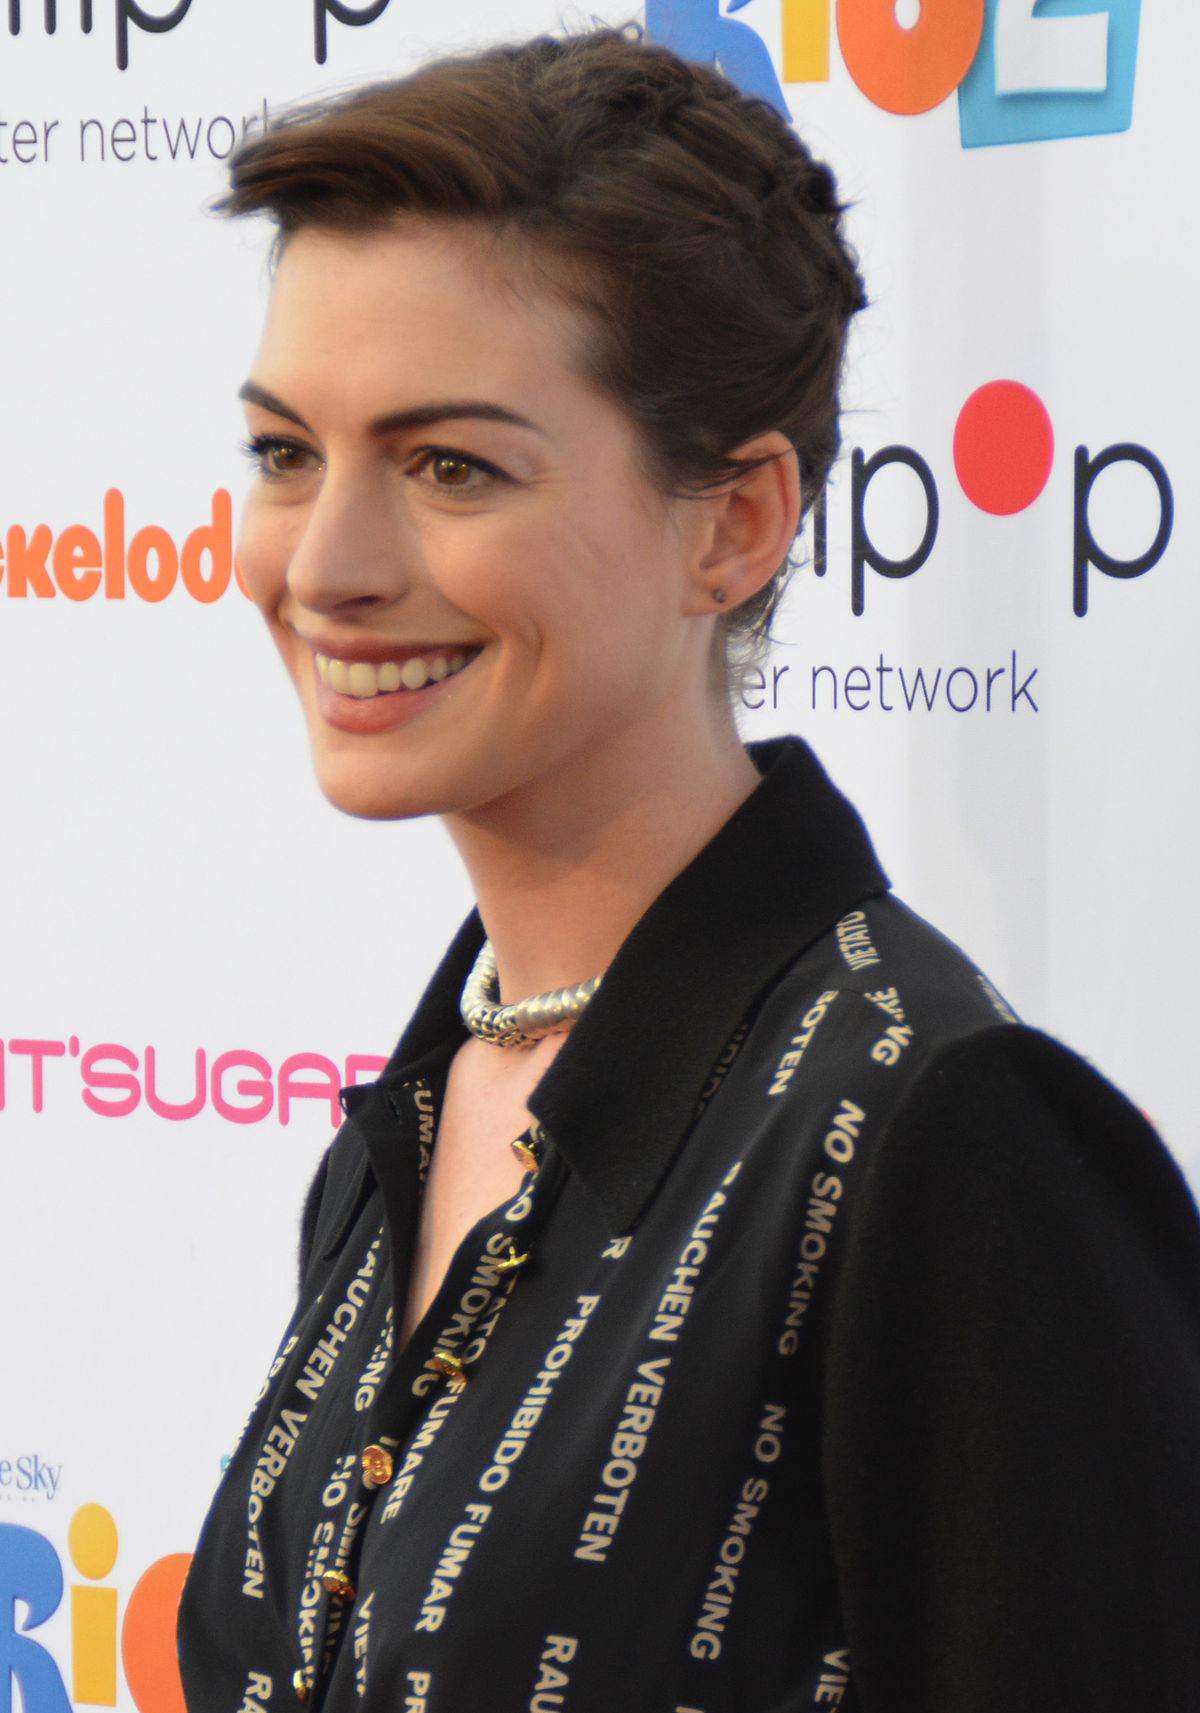 imdb anne hathaway pin su les miserables full movie da non perdere  anne hathaway